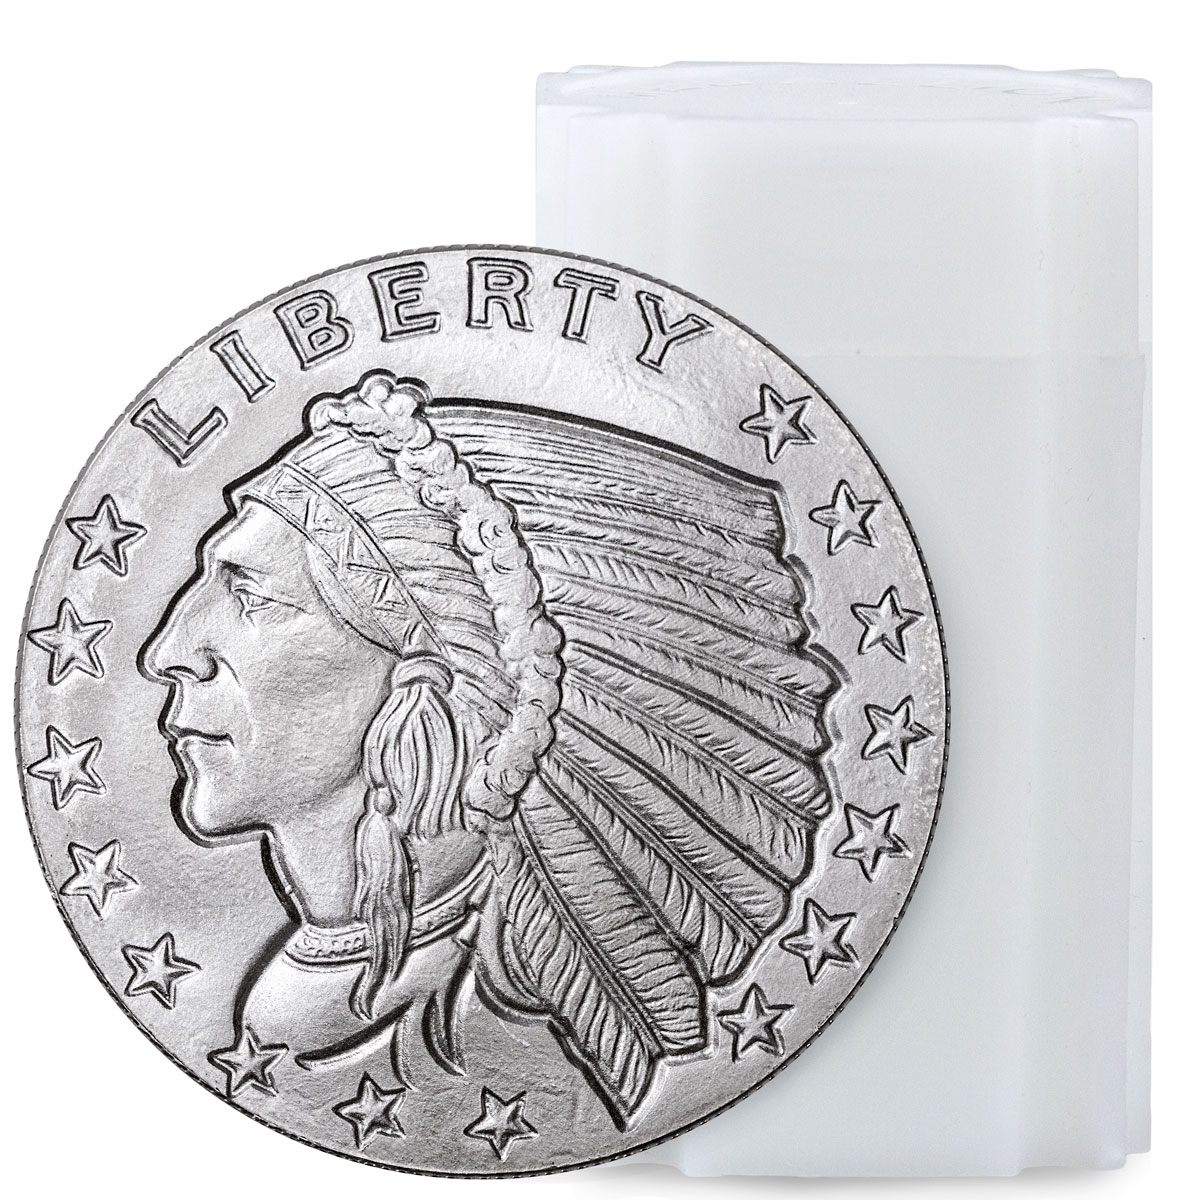 Roll of 20 - Golden State Mint Indian Head Design Incused 1 oz Silver Round BU